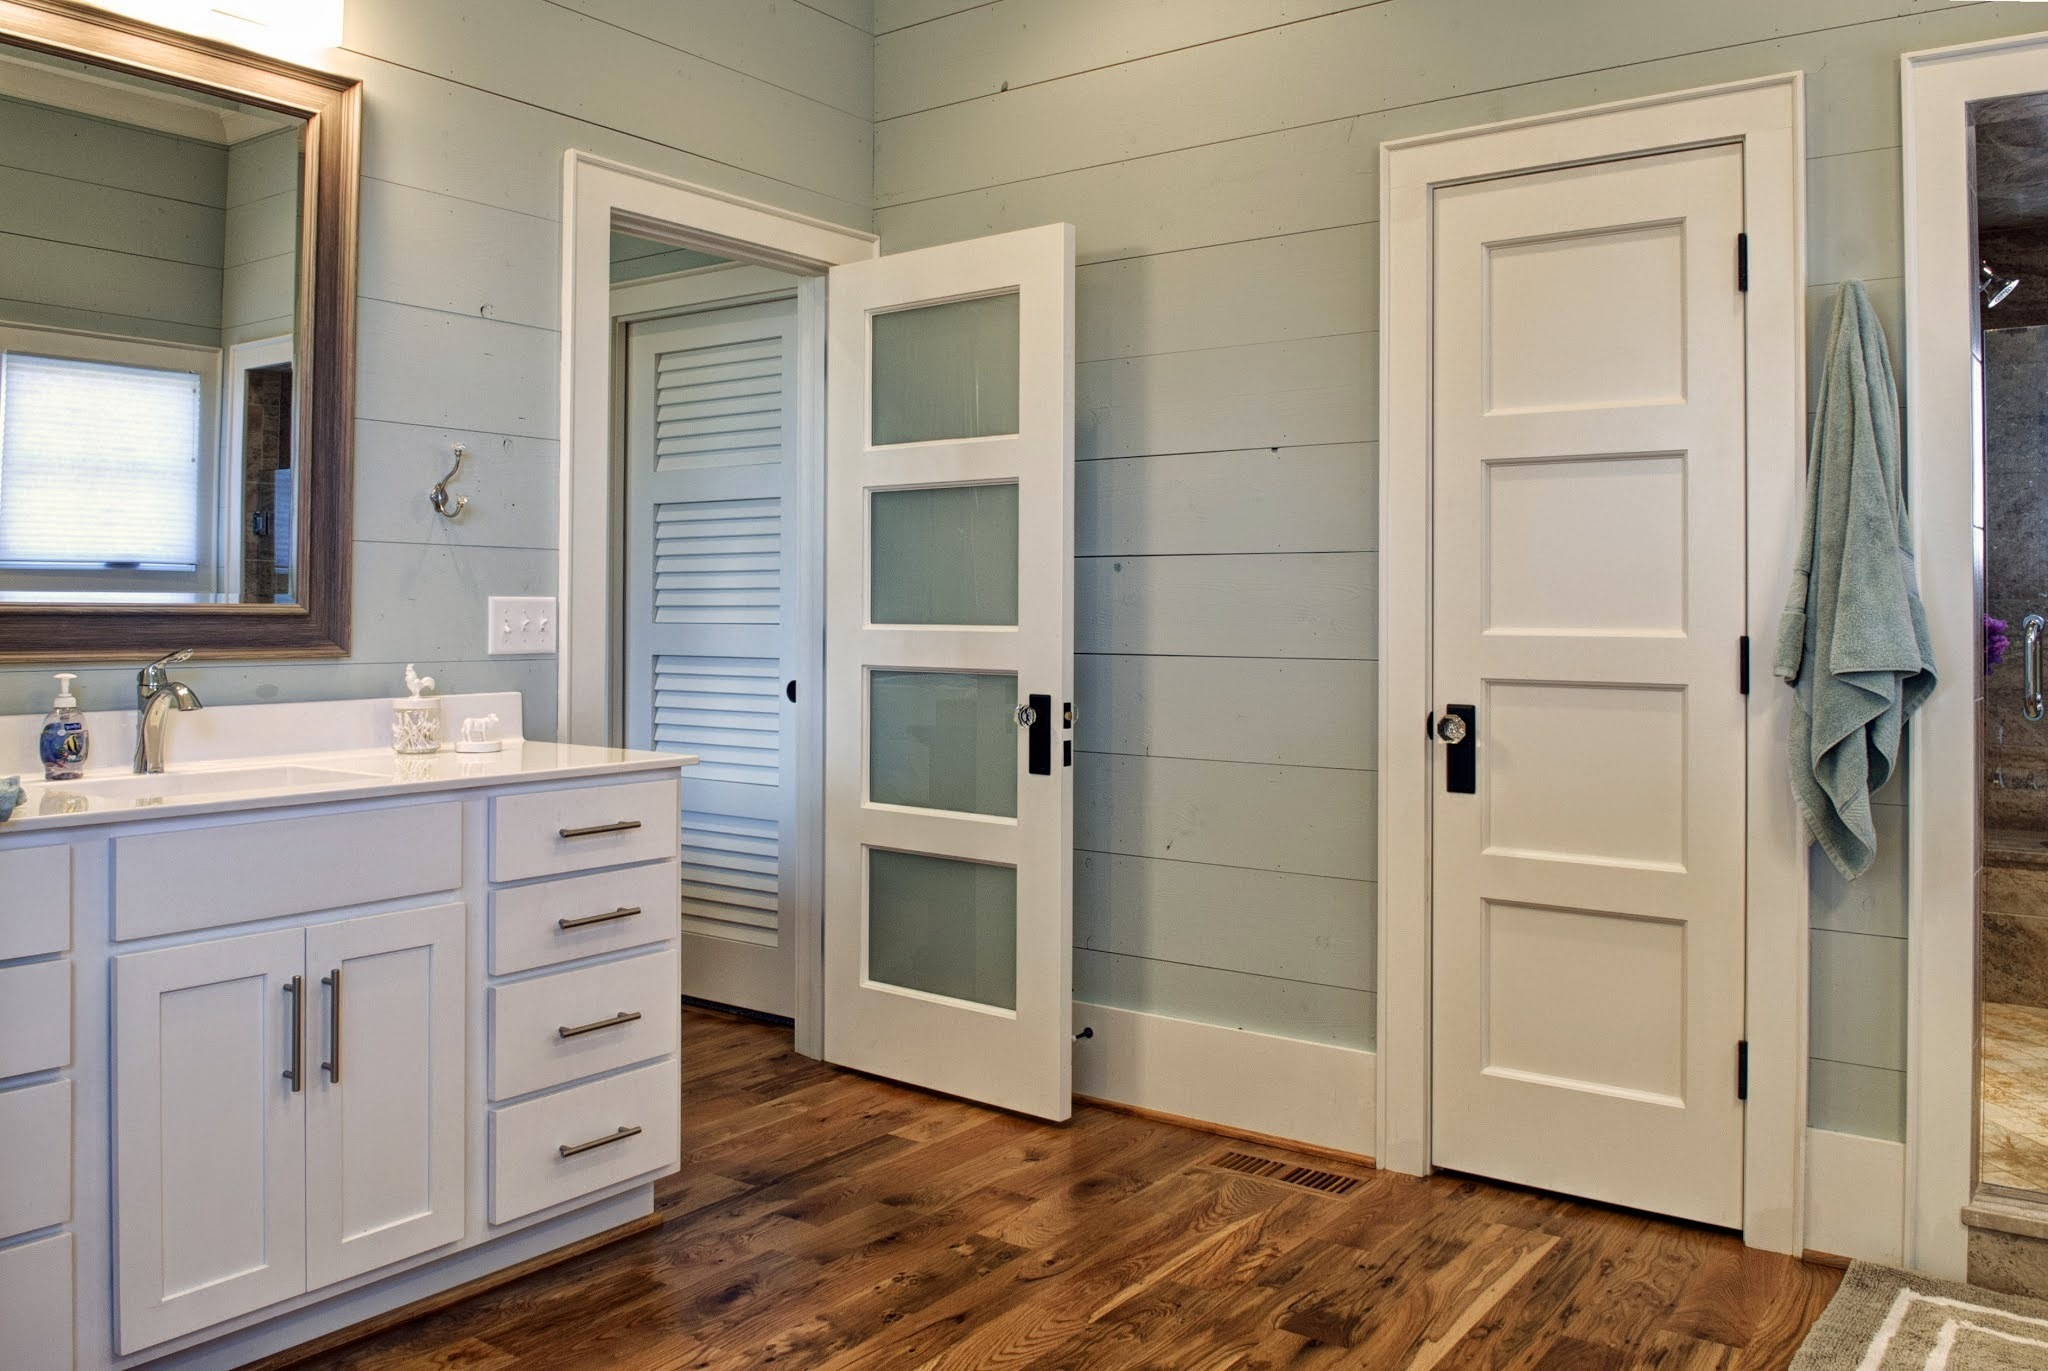 White interior doors with black handles